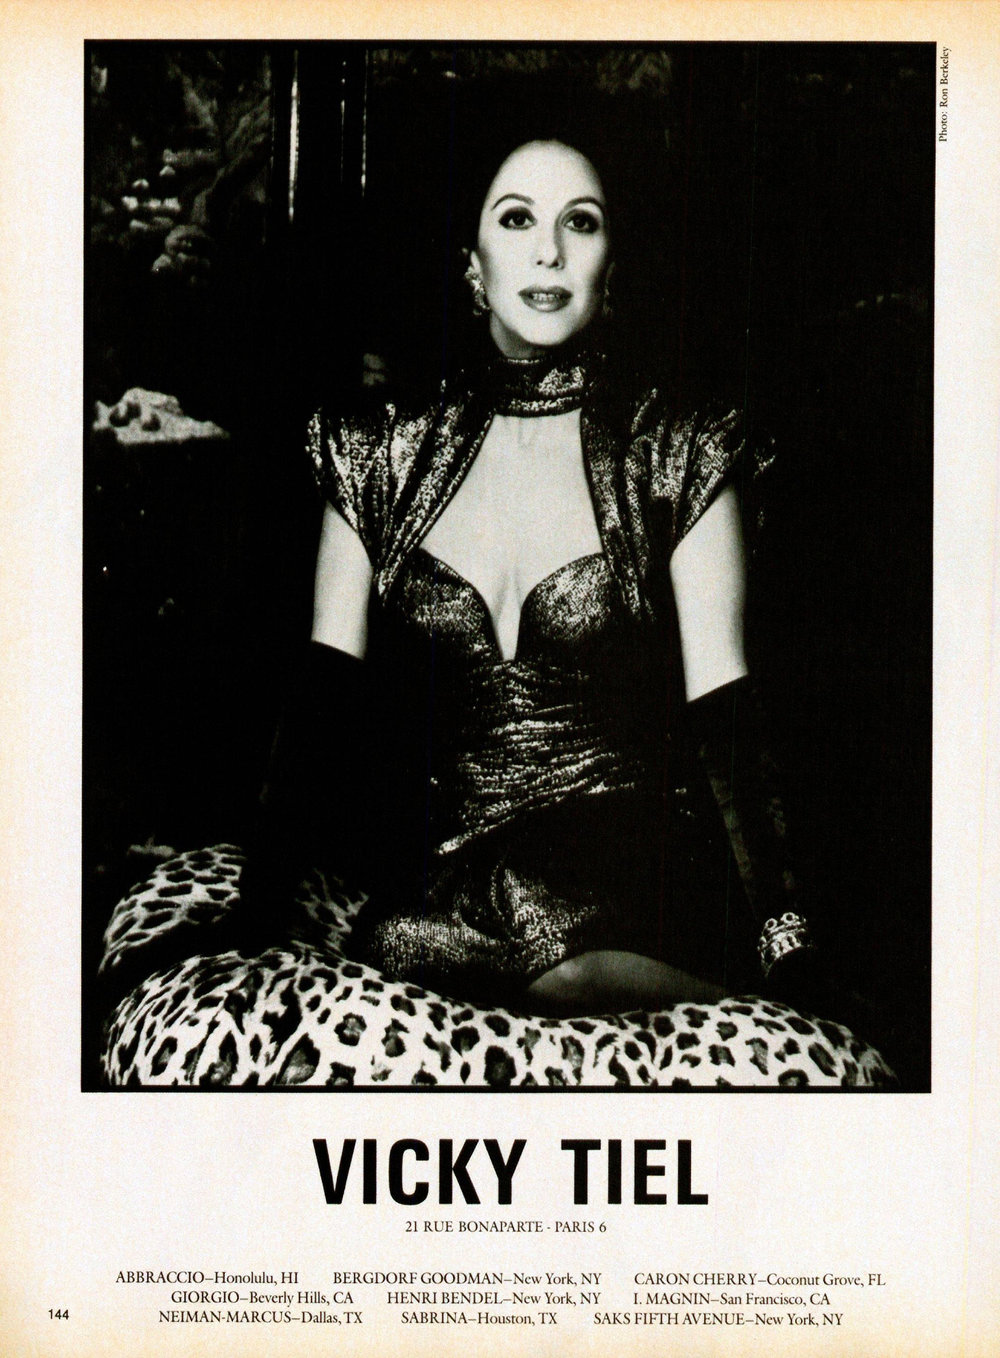 The same dress on Vicky Tiel in an ad from 1985.